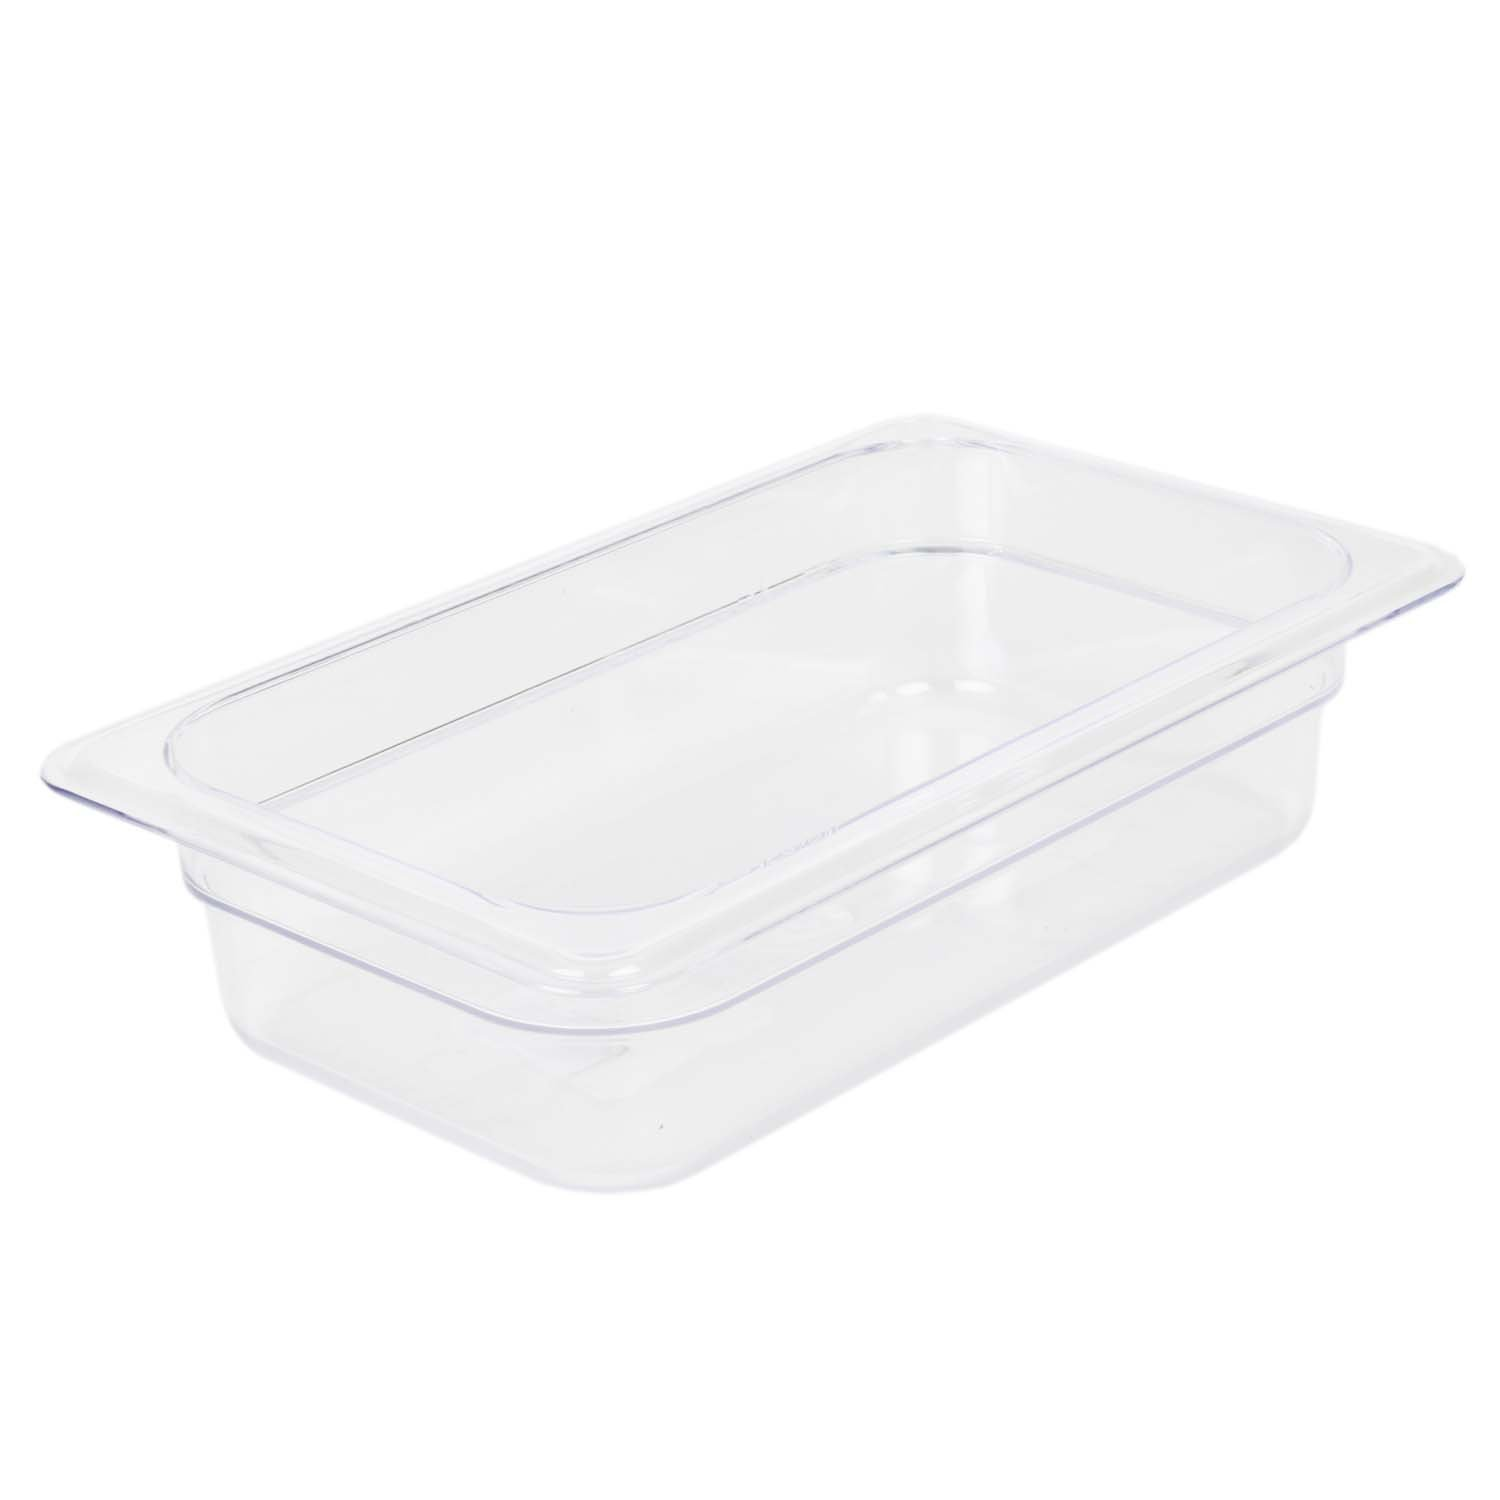 Excellante 849851007161 Deep Polycarbonate Food Pan, 2.5